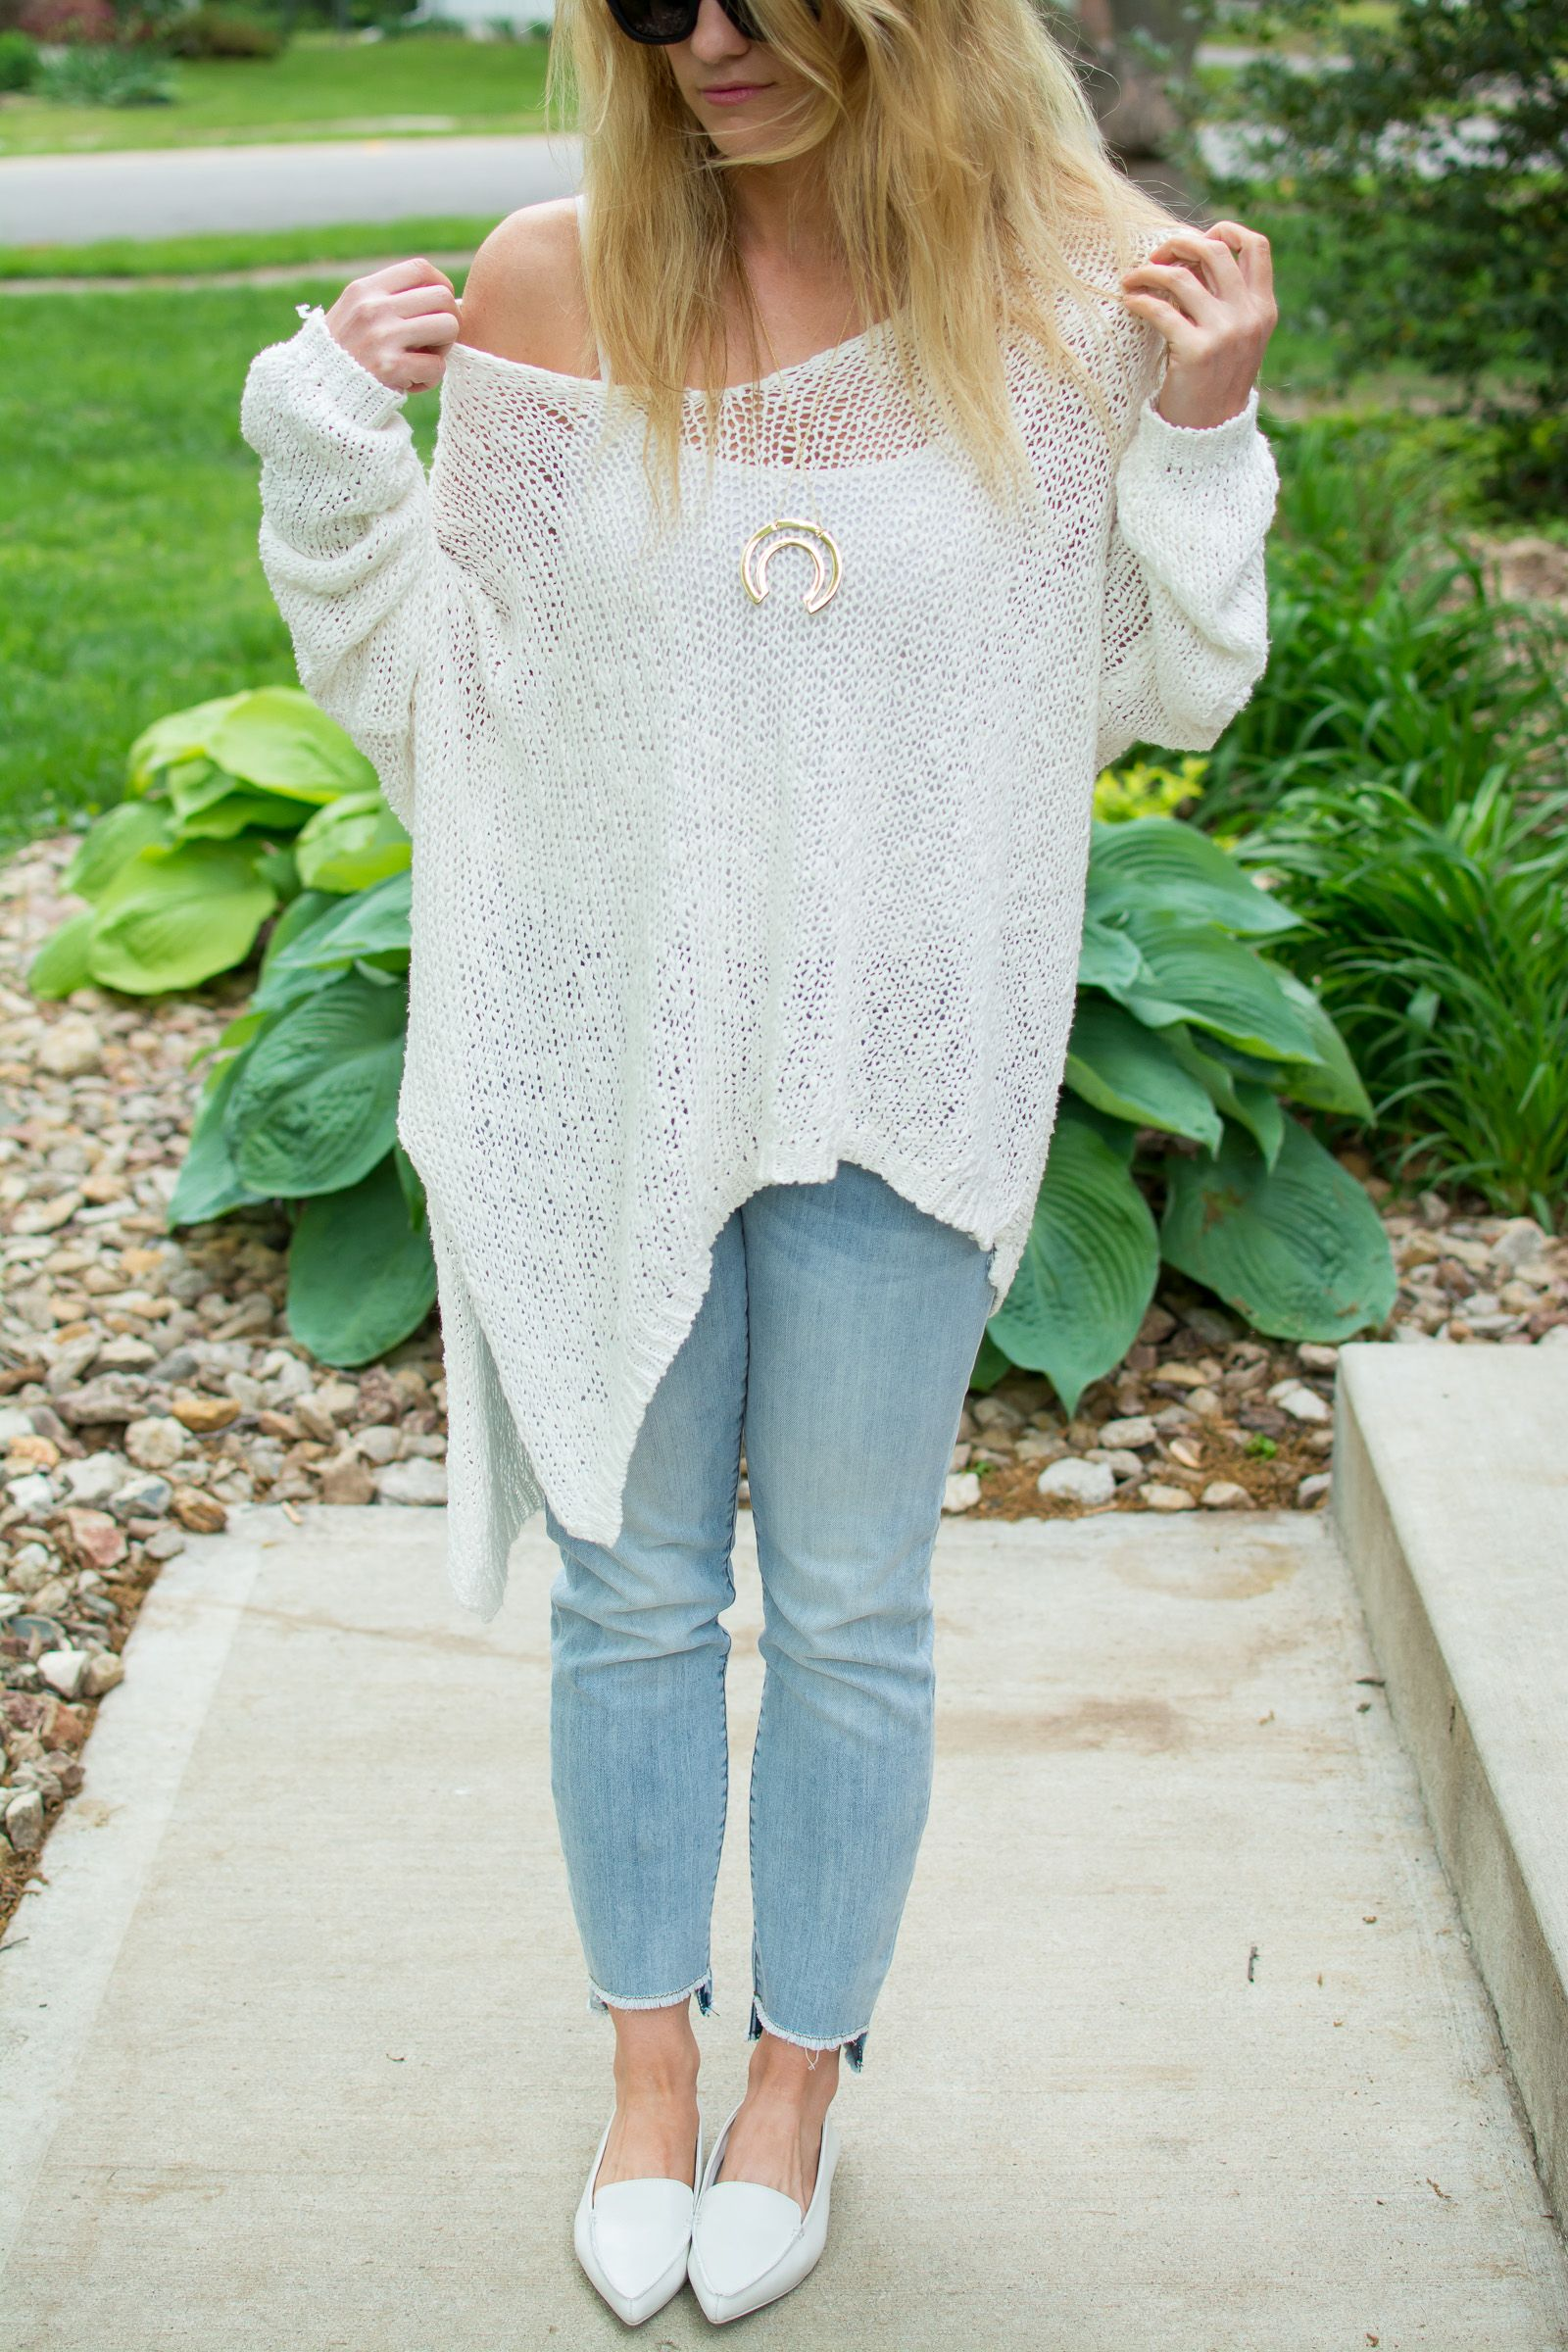 33b586629b Styling Spring Whites with a Free People Sweater.